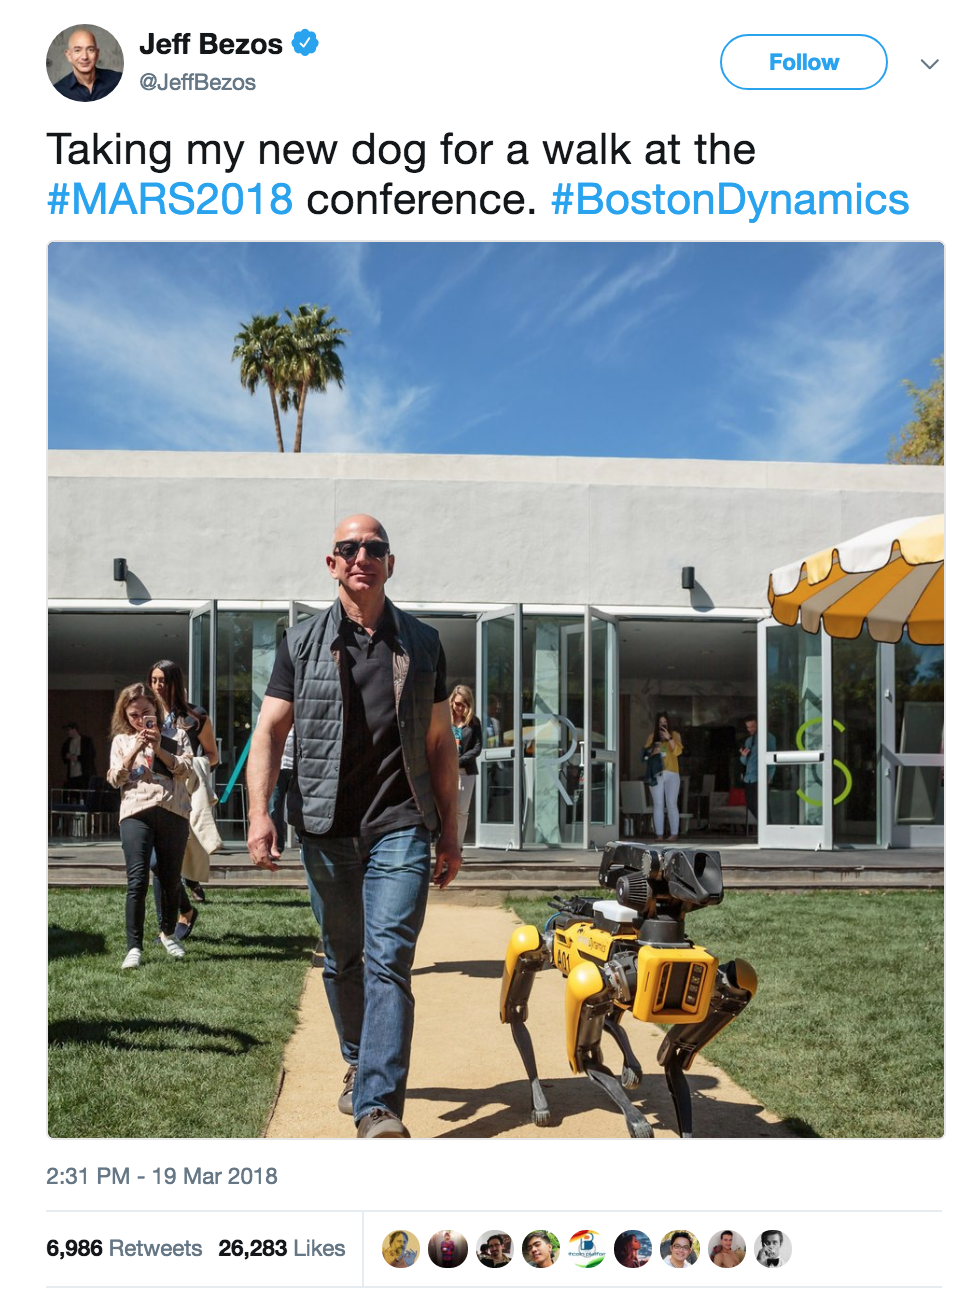 Jeff Bezos tweet of him walking with dog robot